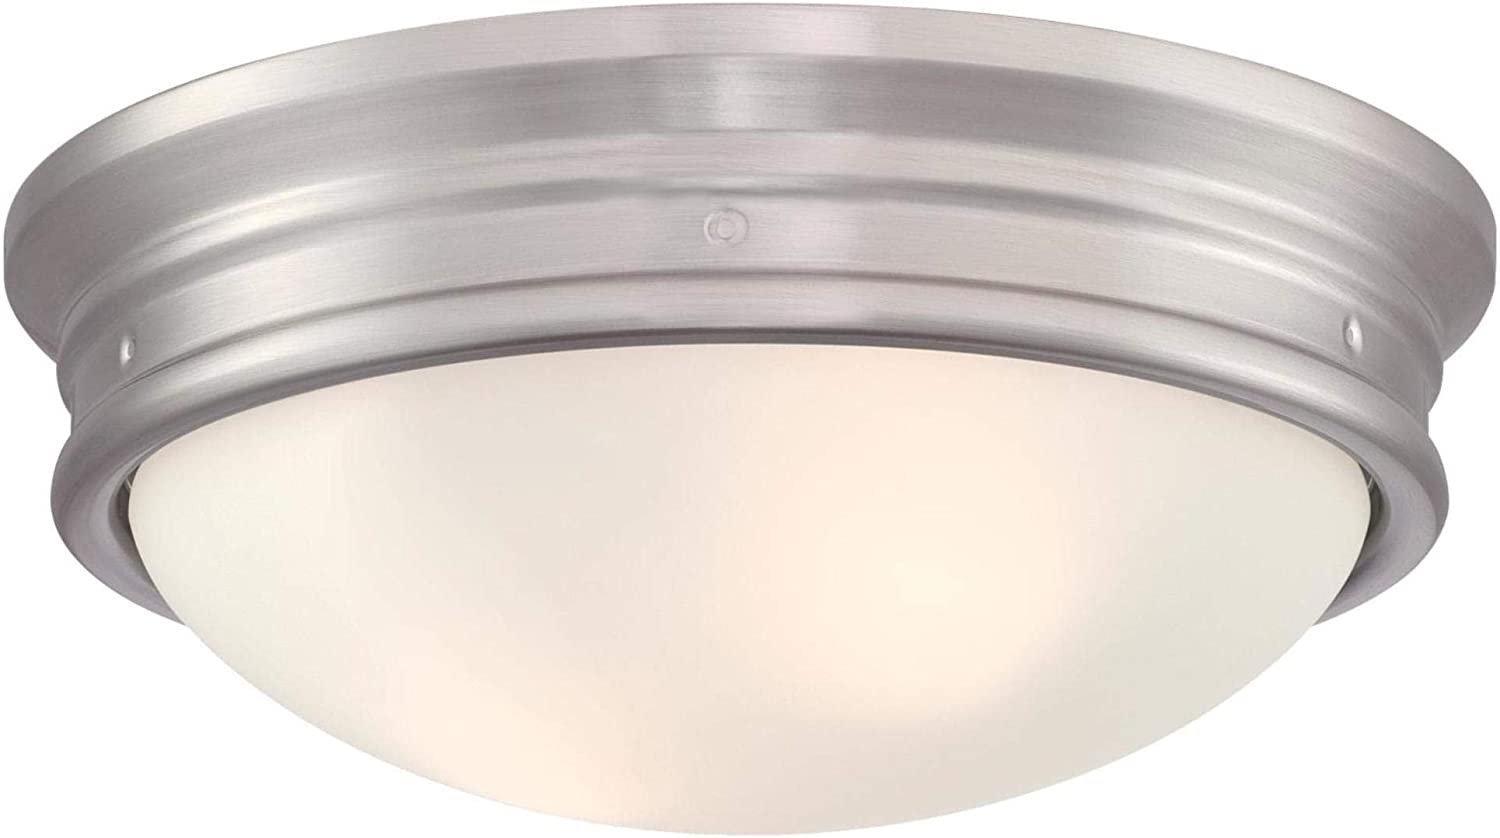 Westinghouse Lighting 6370700 Meadowbrook 13-Inch, Two-Light Indoor Flush Mount Ceiling Light Fixture, Brushed Nickel Finish with Frosted Glass